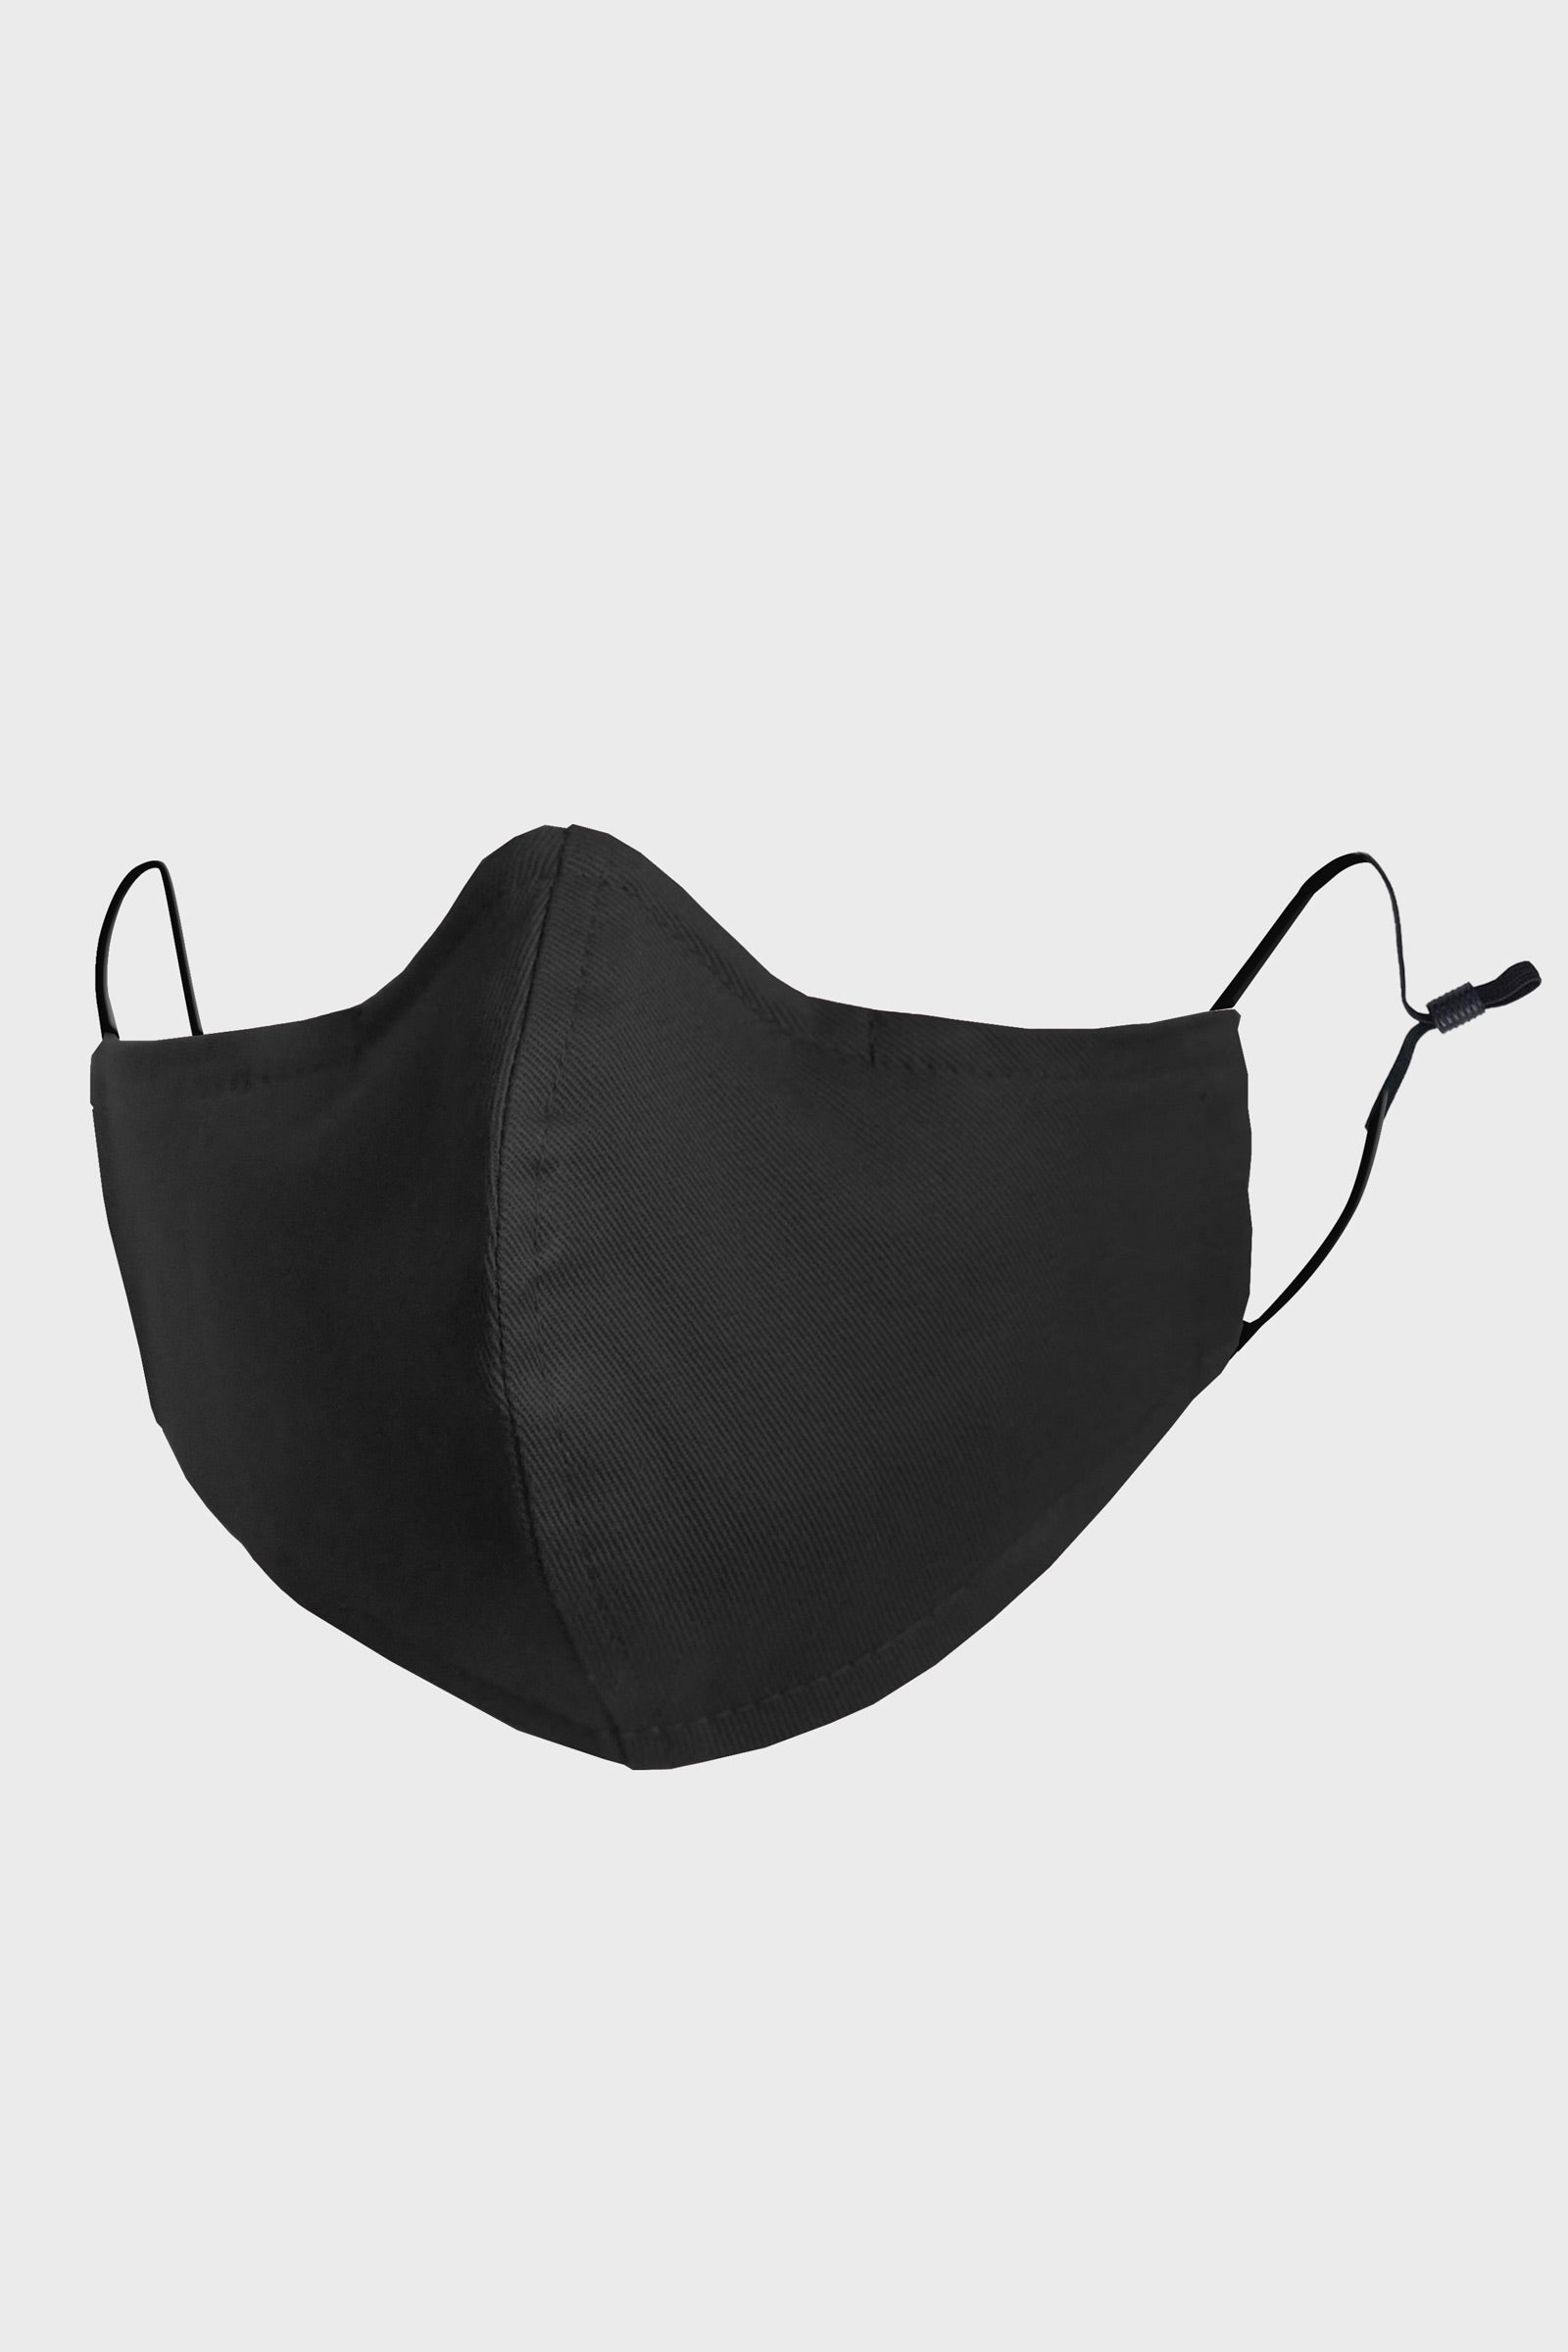 Retail NDSTRY Mask - Black